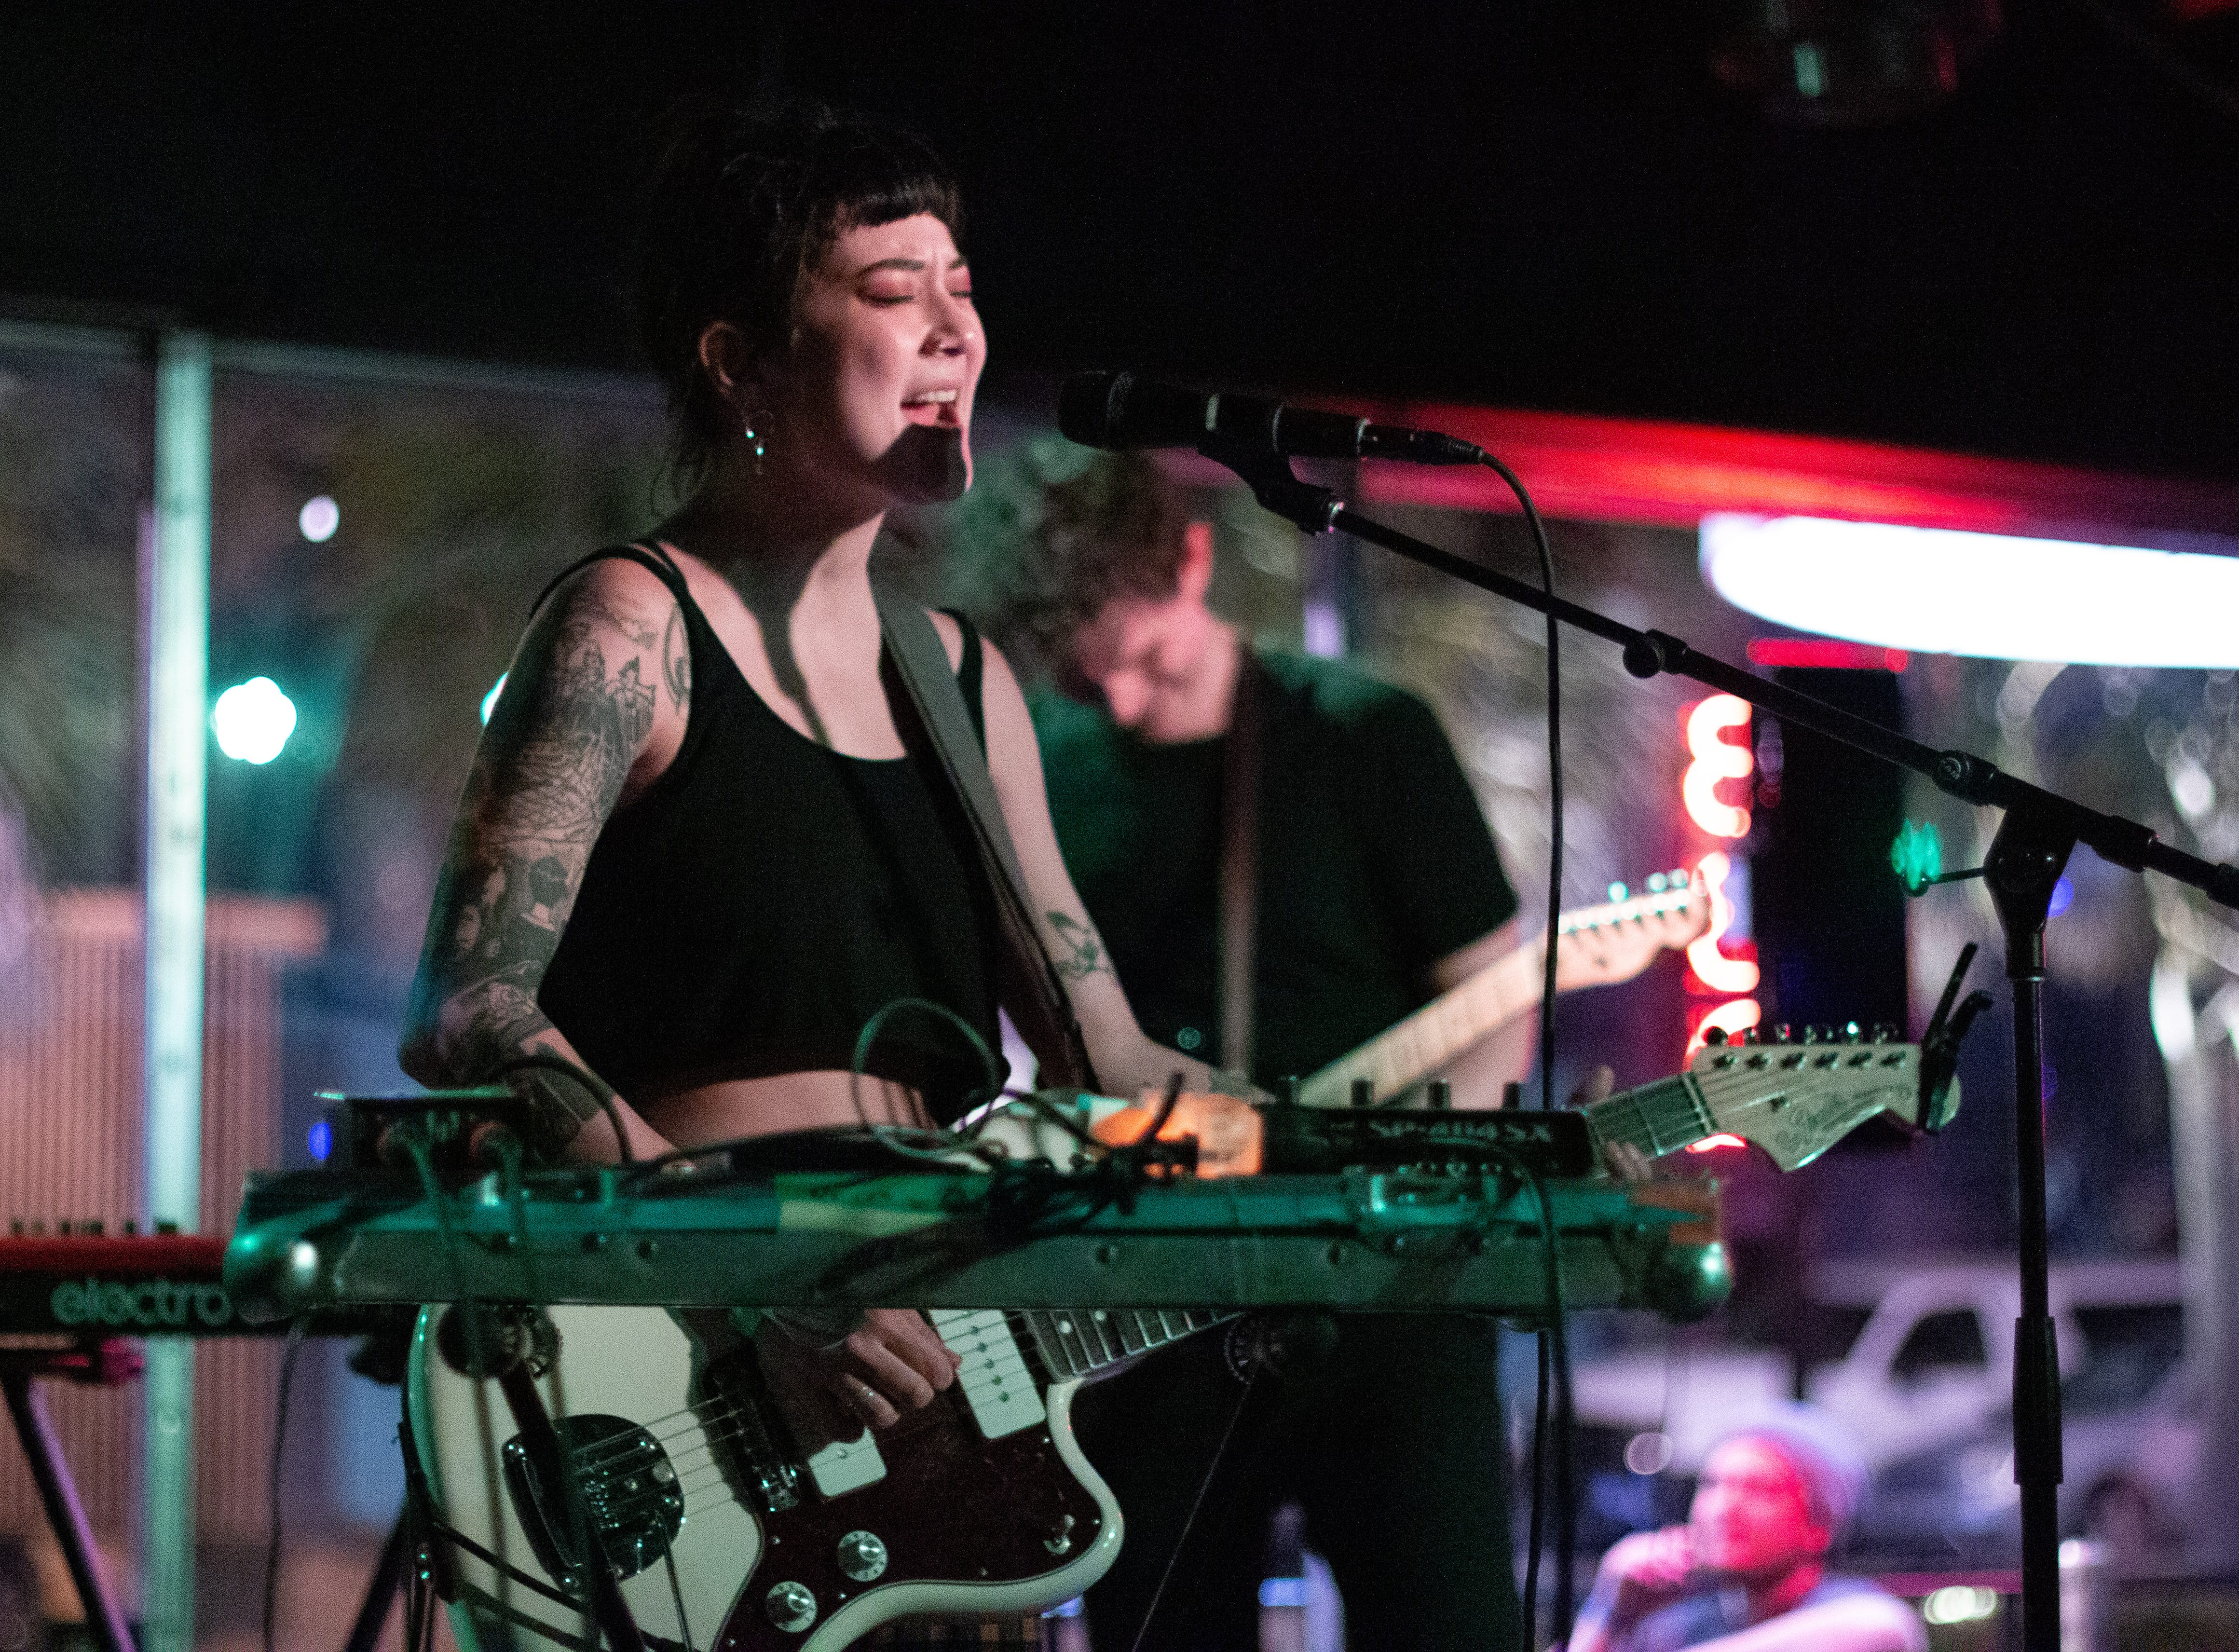 Japanese Breakfast became more intense throughout their set.